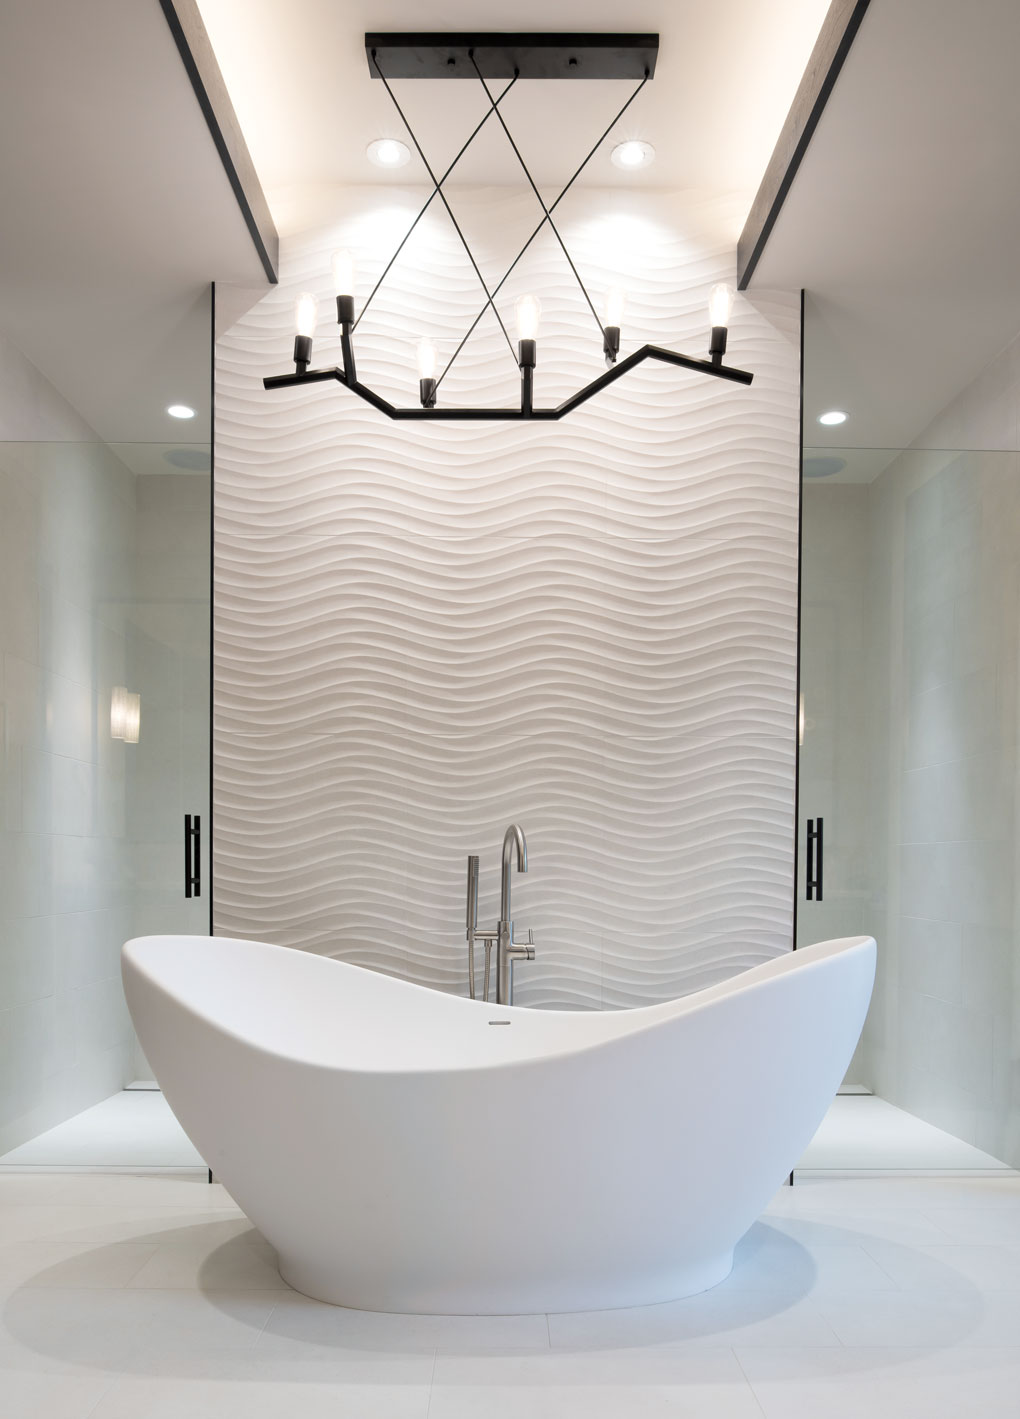 The master bathroom in Greg Jennings' Minnesota home features an elegant egg-shaped tub.